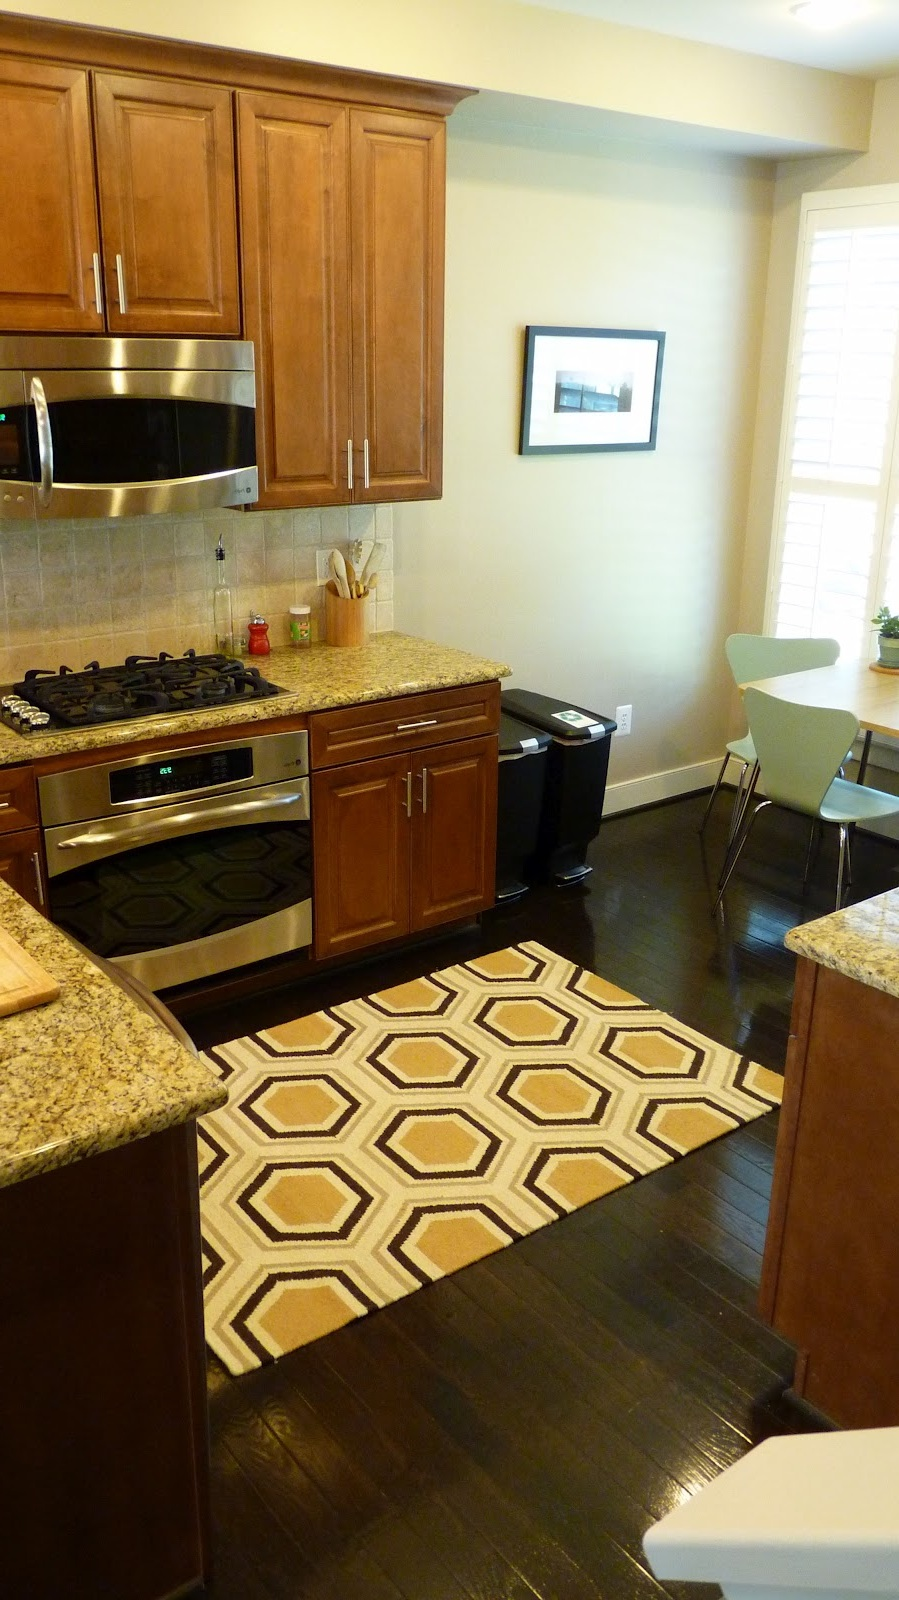 Contemporary Kitchen Rugs For Hardwood Floor (Image 1 of 5)